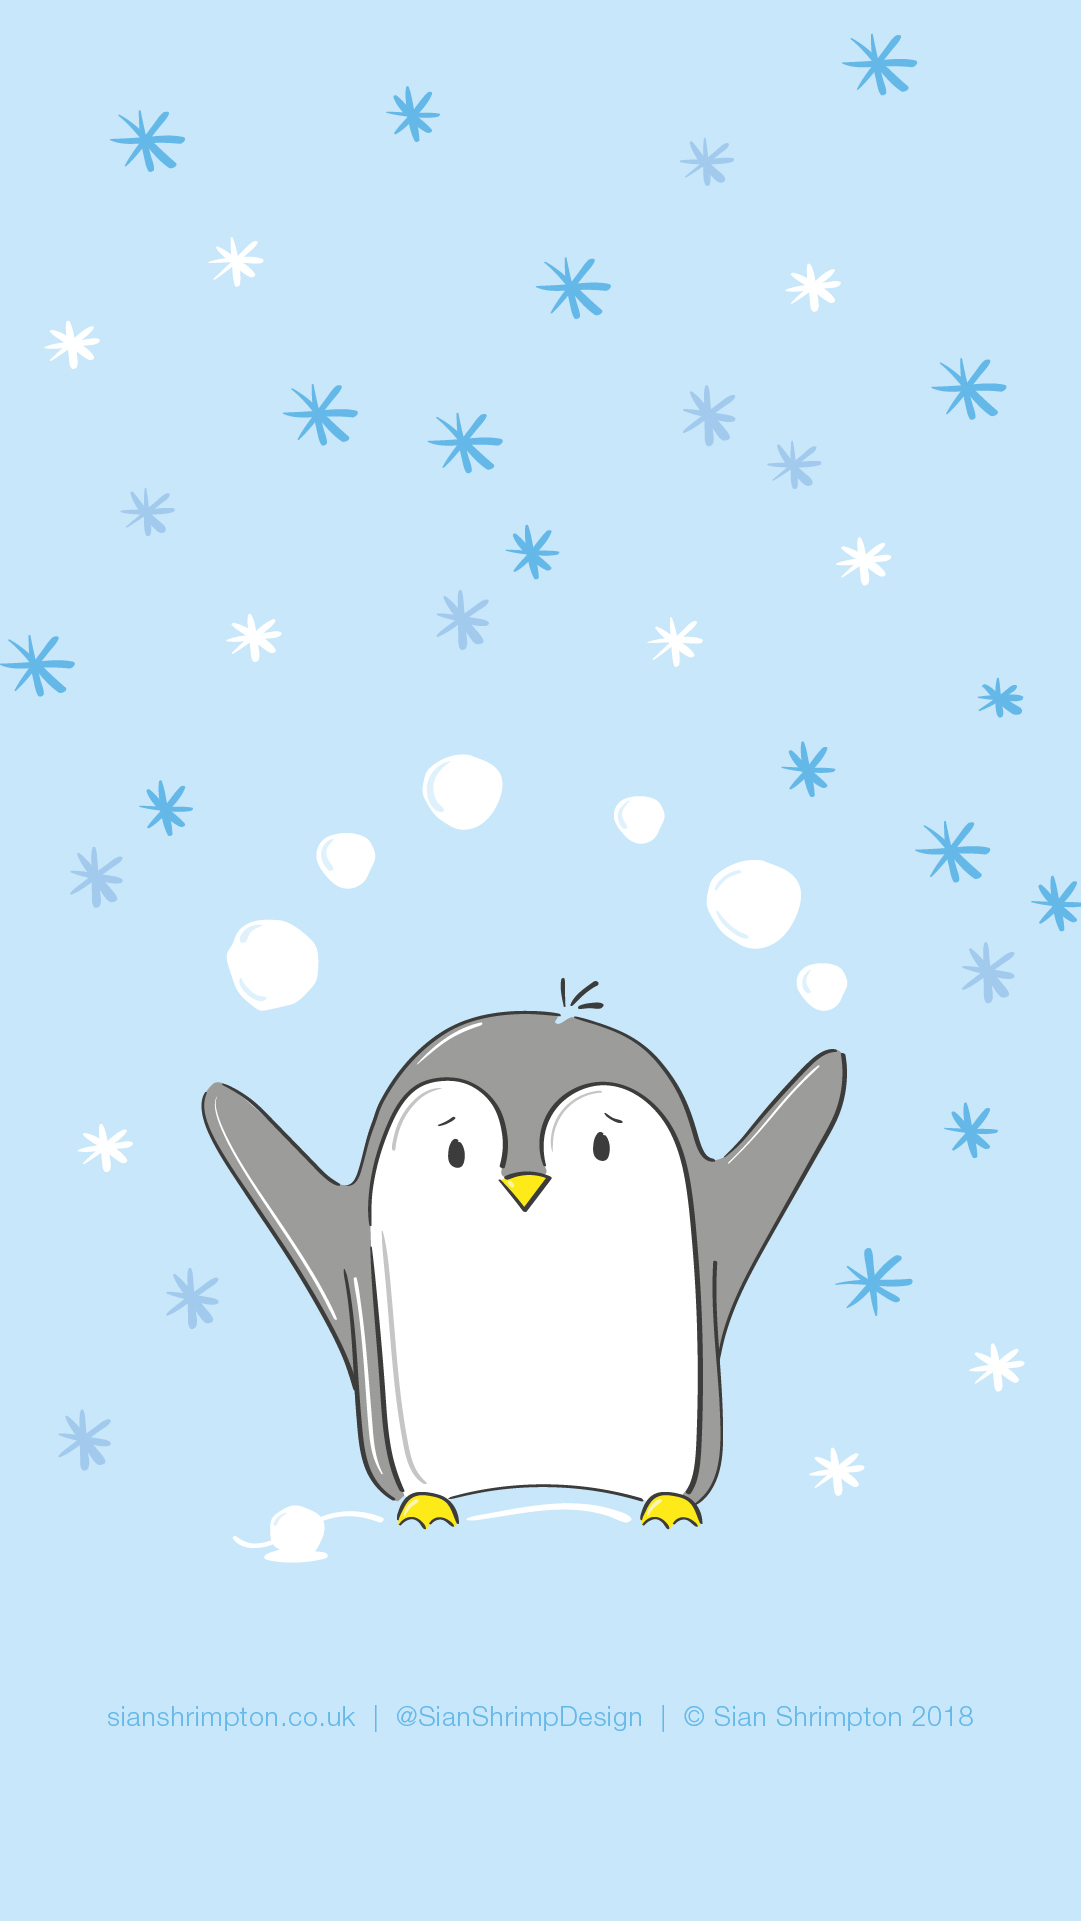 Penguin Wallpaper Iphone 105 images in Collection Page 2 1081x1921